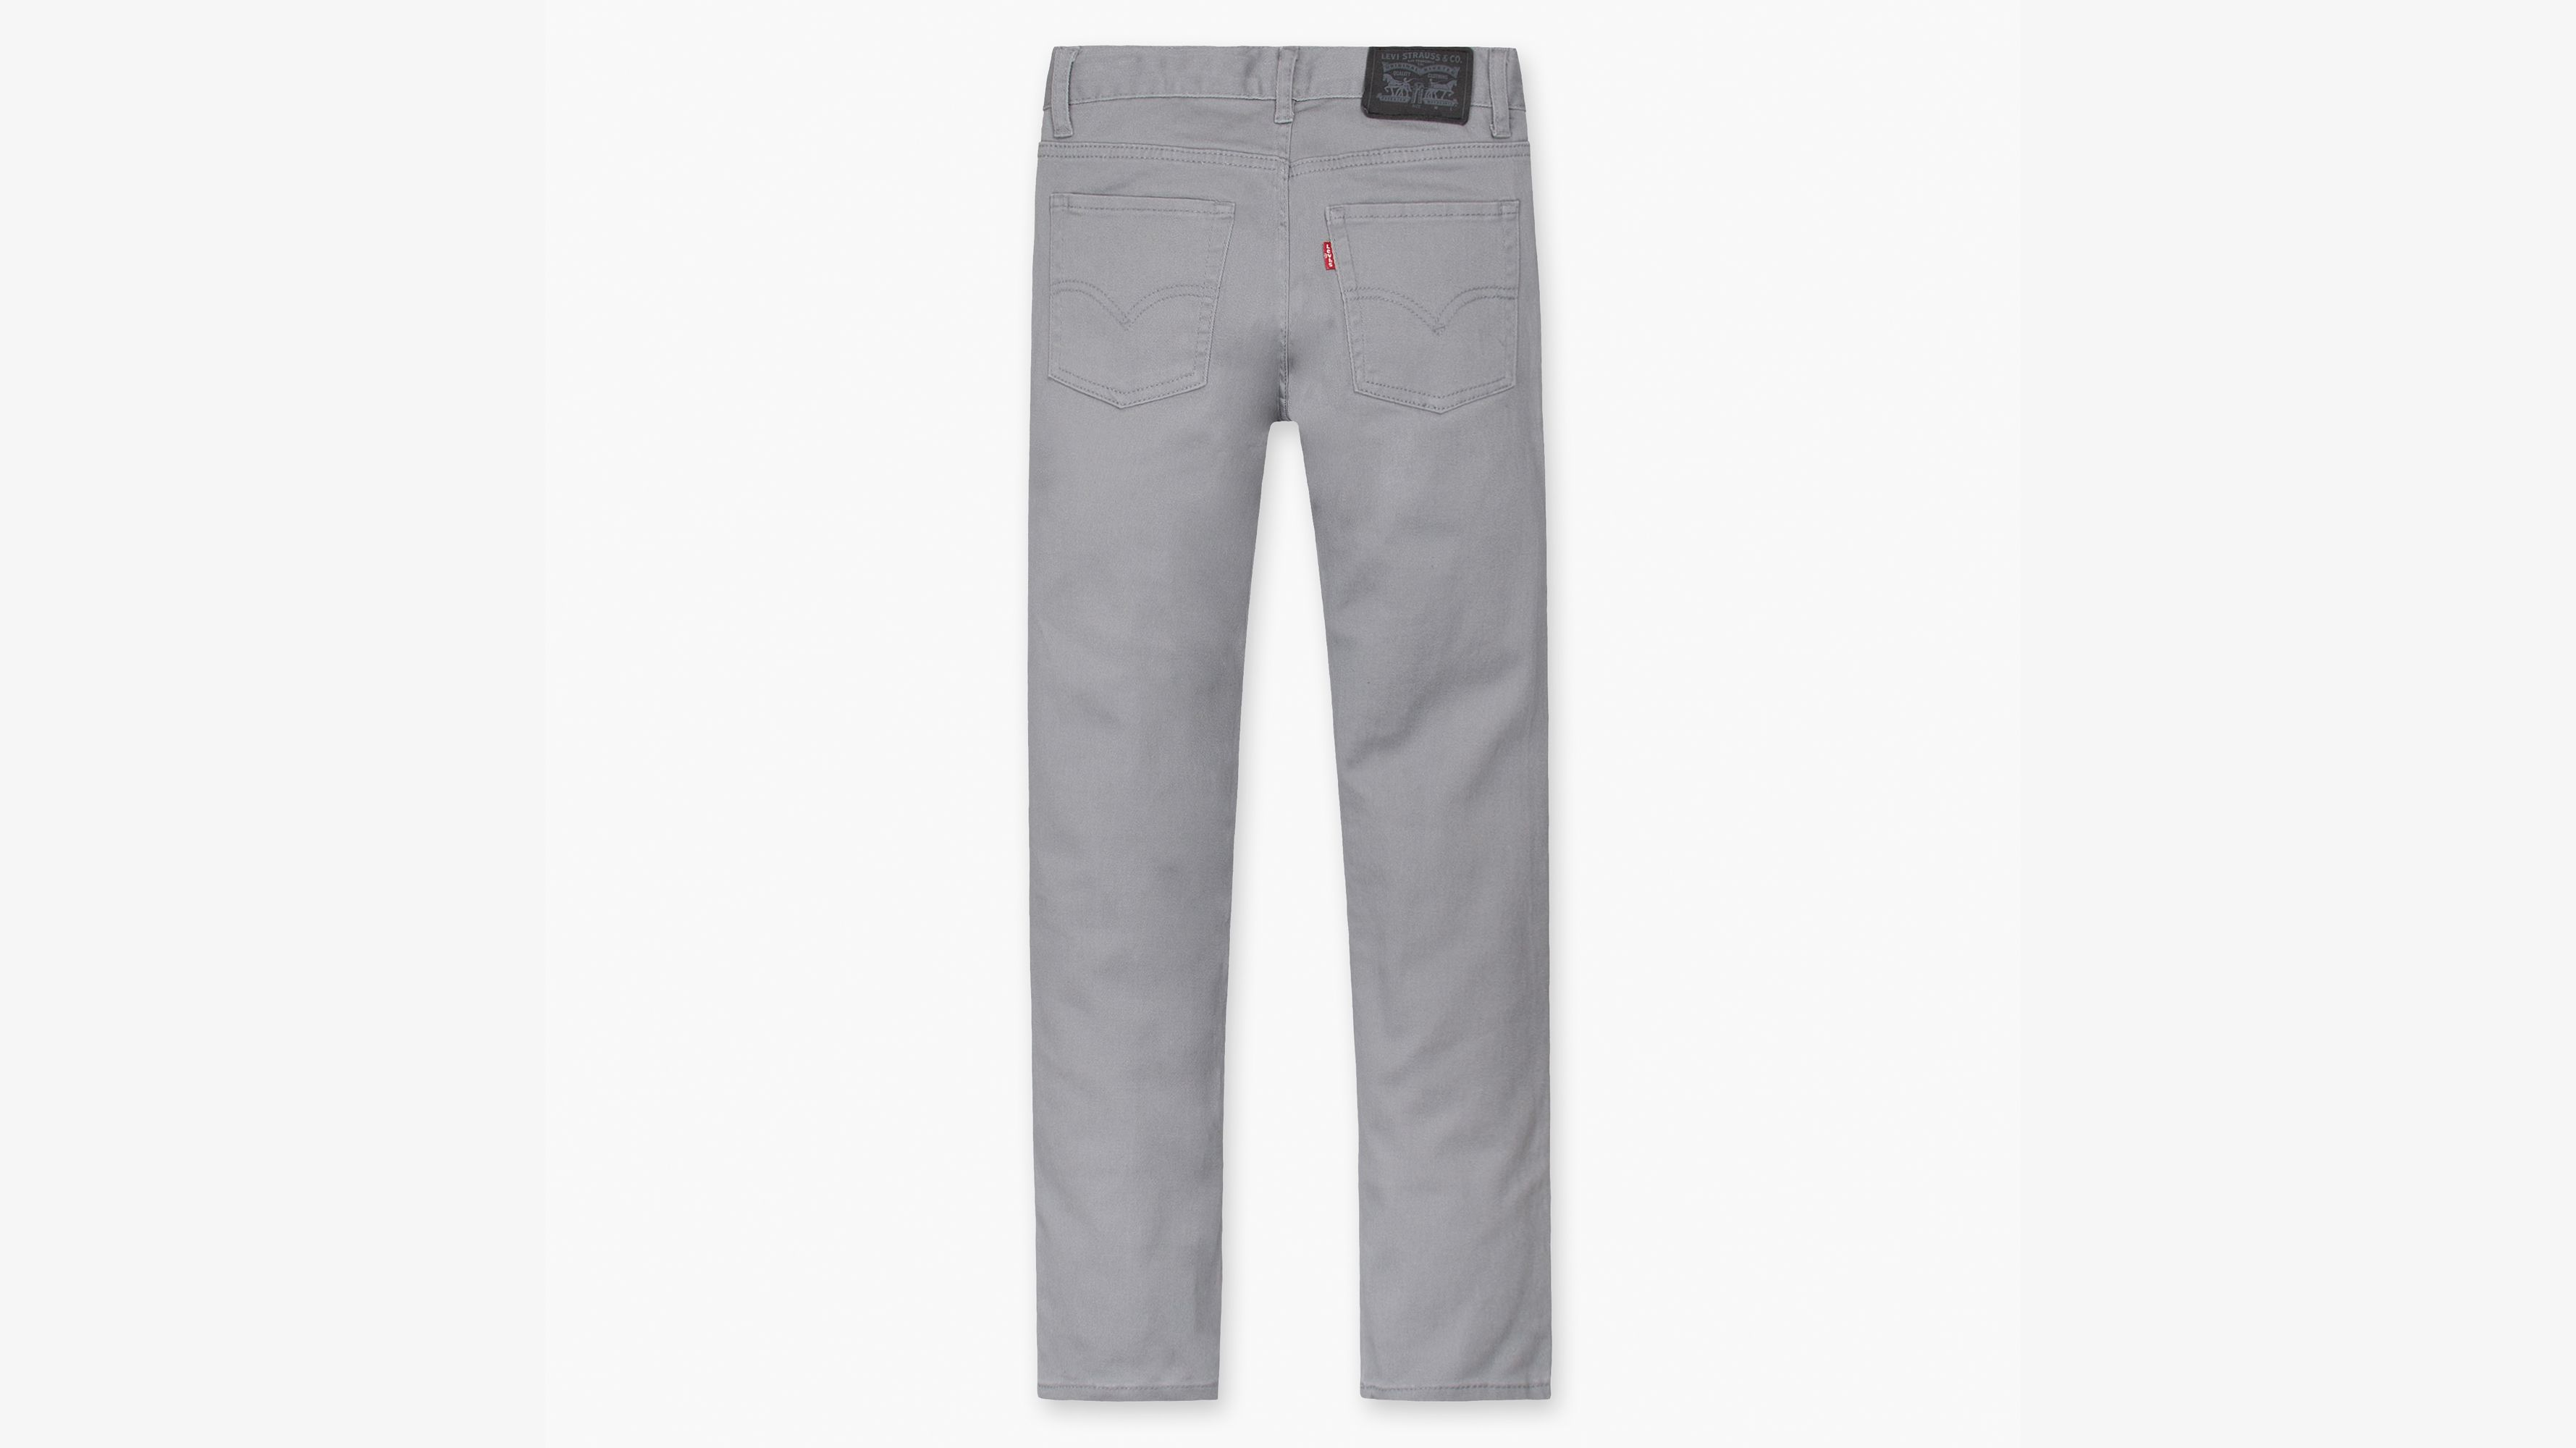 5408b9bd8 Big Boys 8-20 510™ Skinny Fit Jeans - Grey | Levi's® US